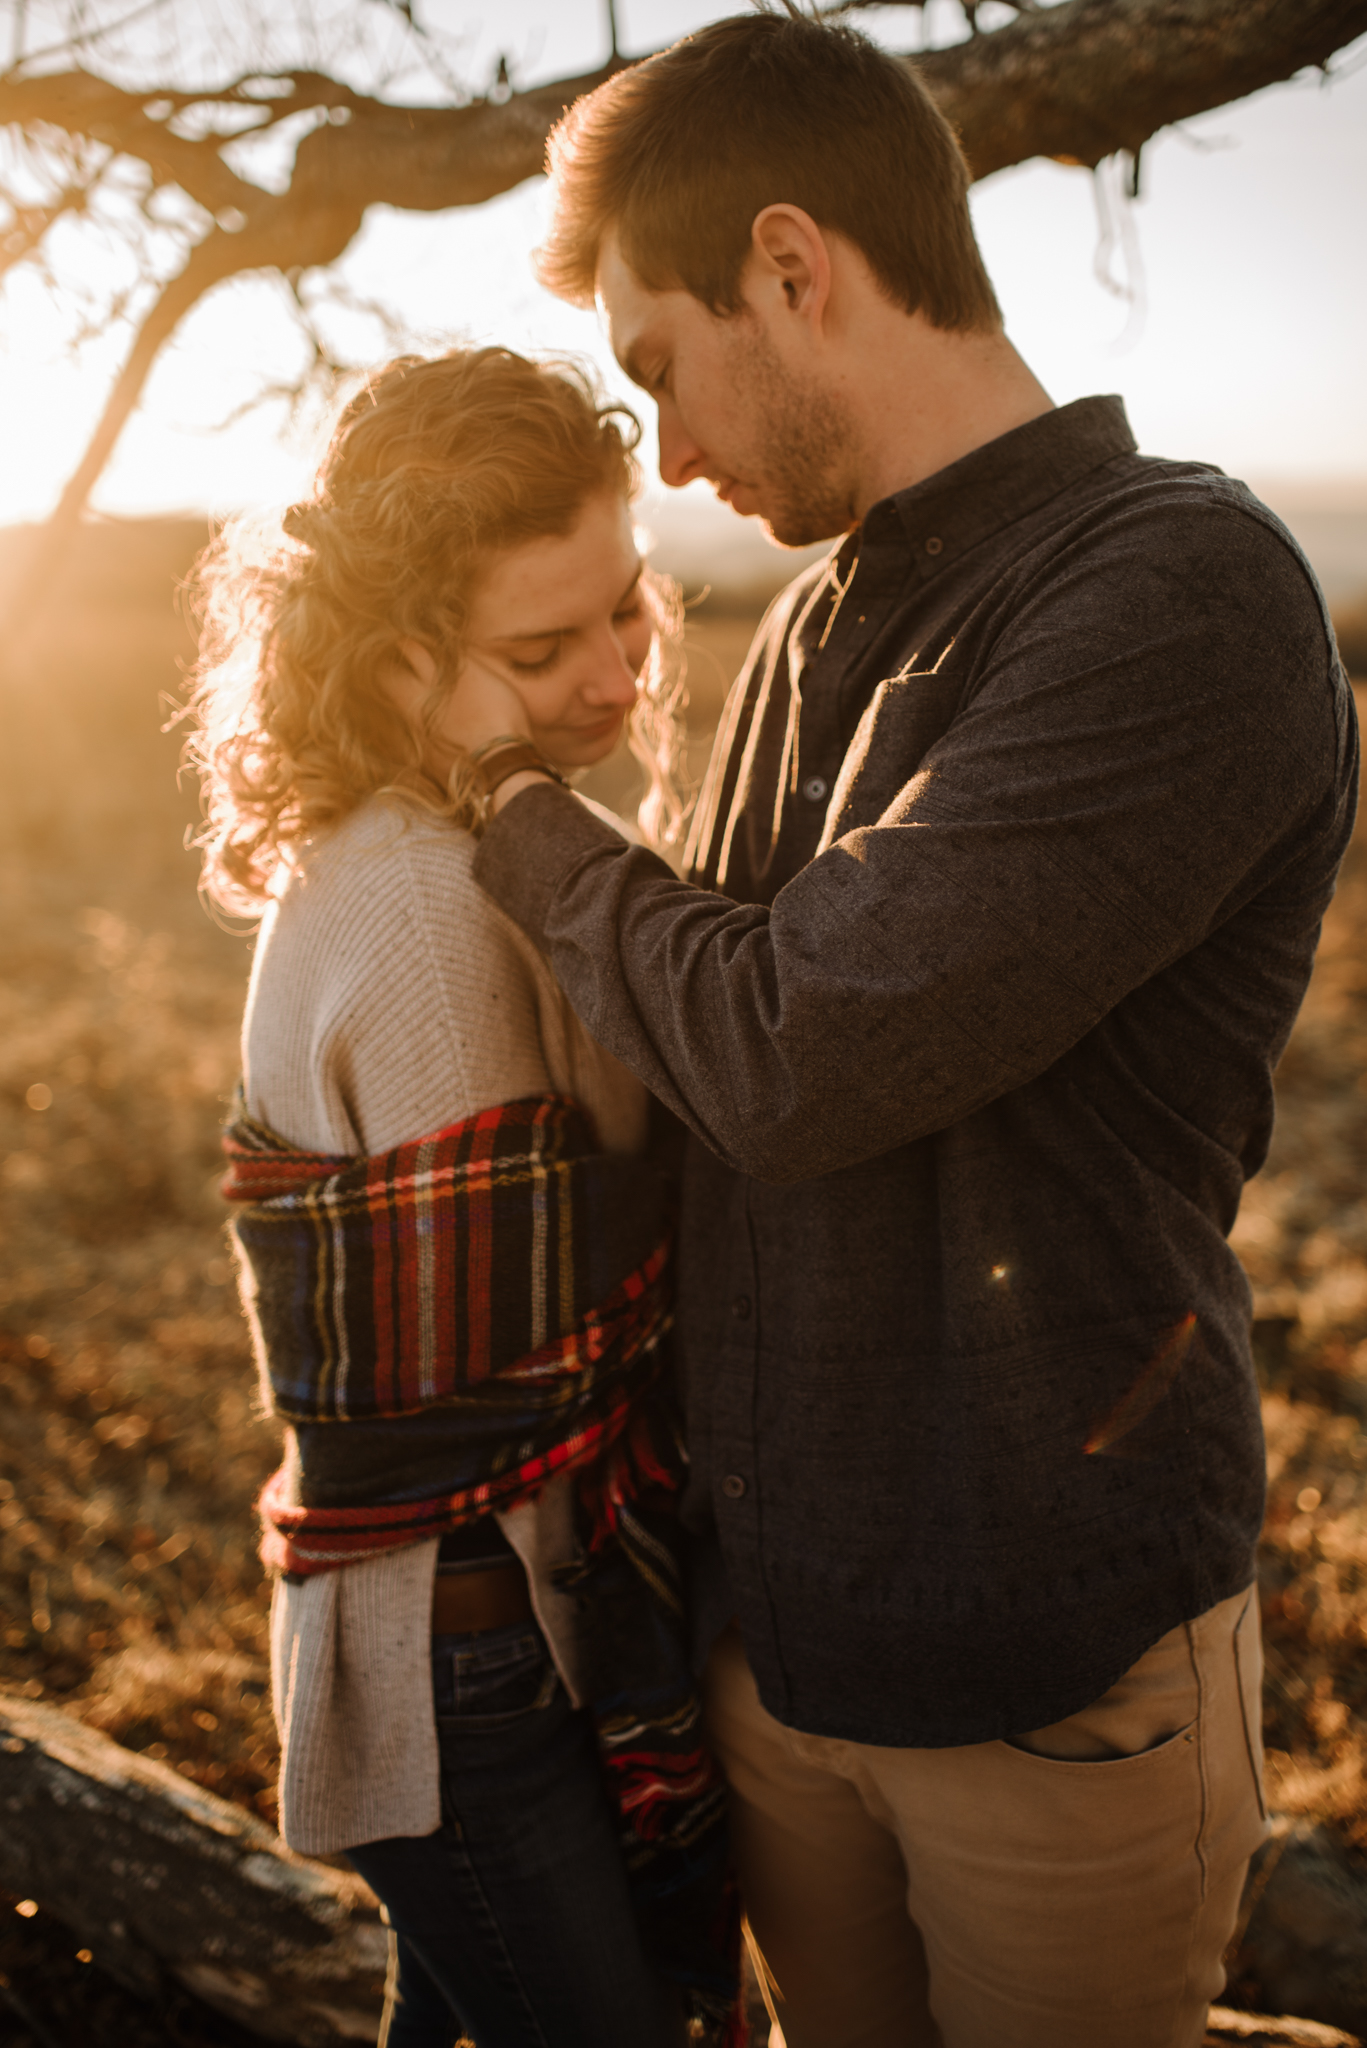 Alli and Mitchell - Shenandoah National Park Adventure Winter Engagement Session on Skyline Drive - White Sails Creative Elopement Photography_51.JPG